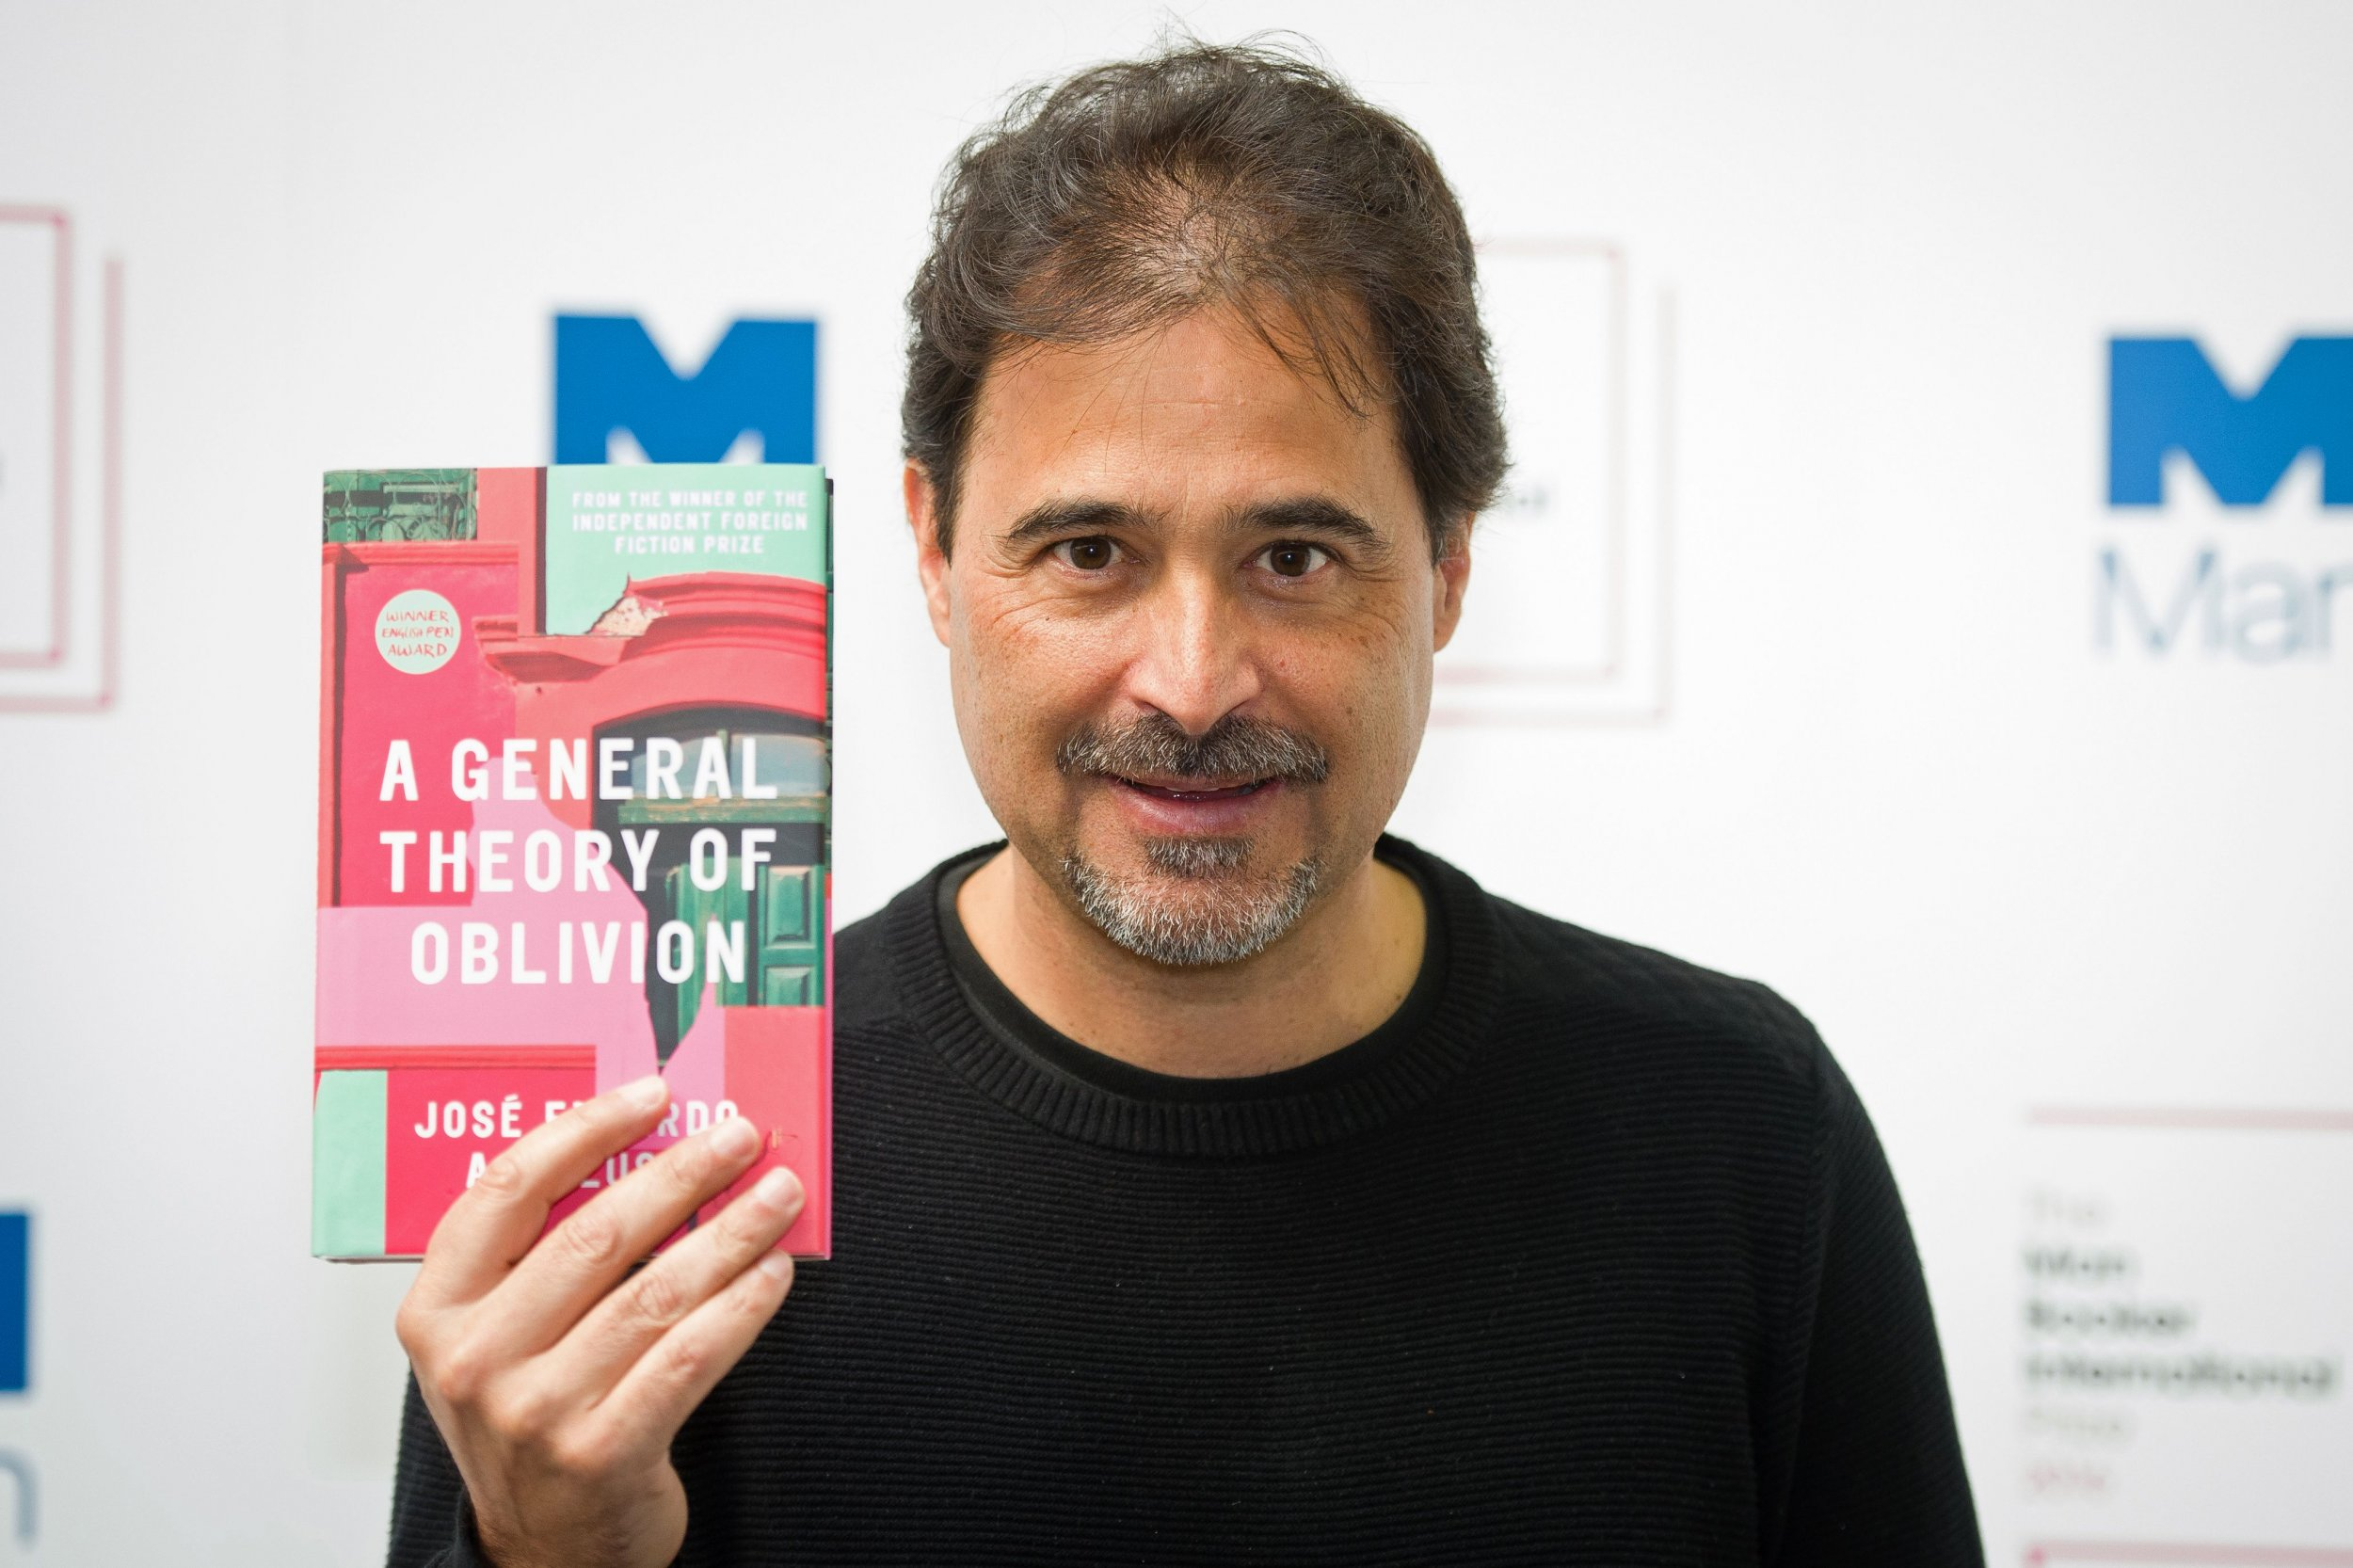 José Eduardo Agualusa and his award-nominated book.